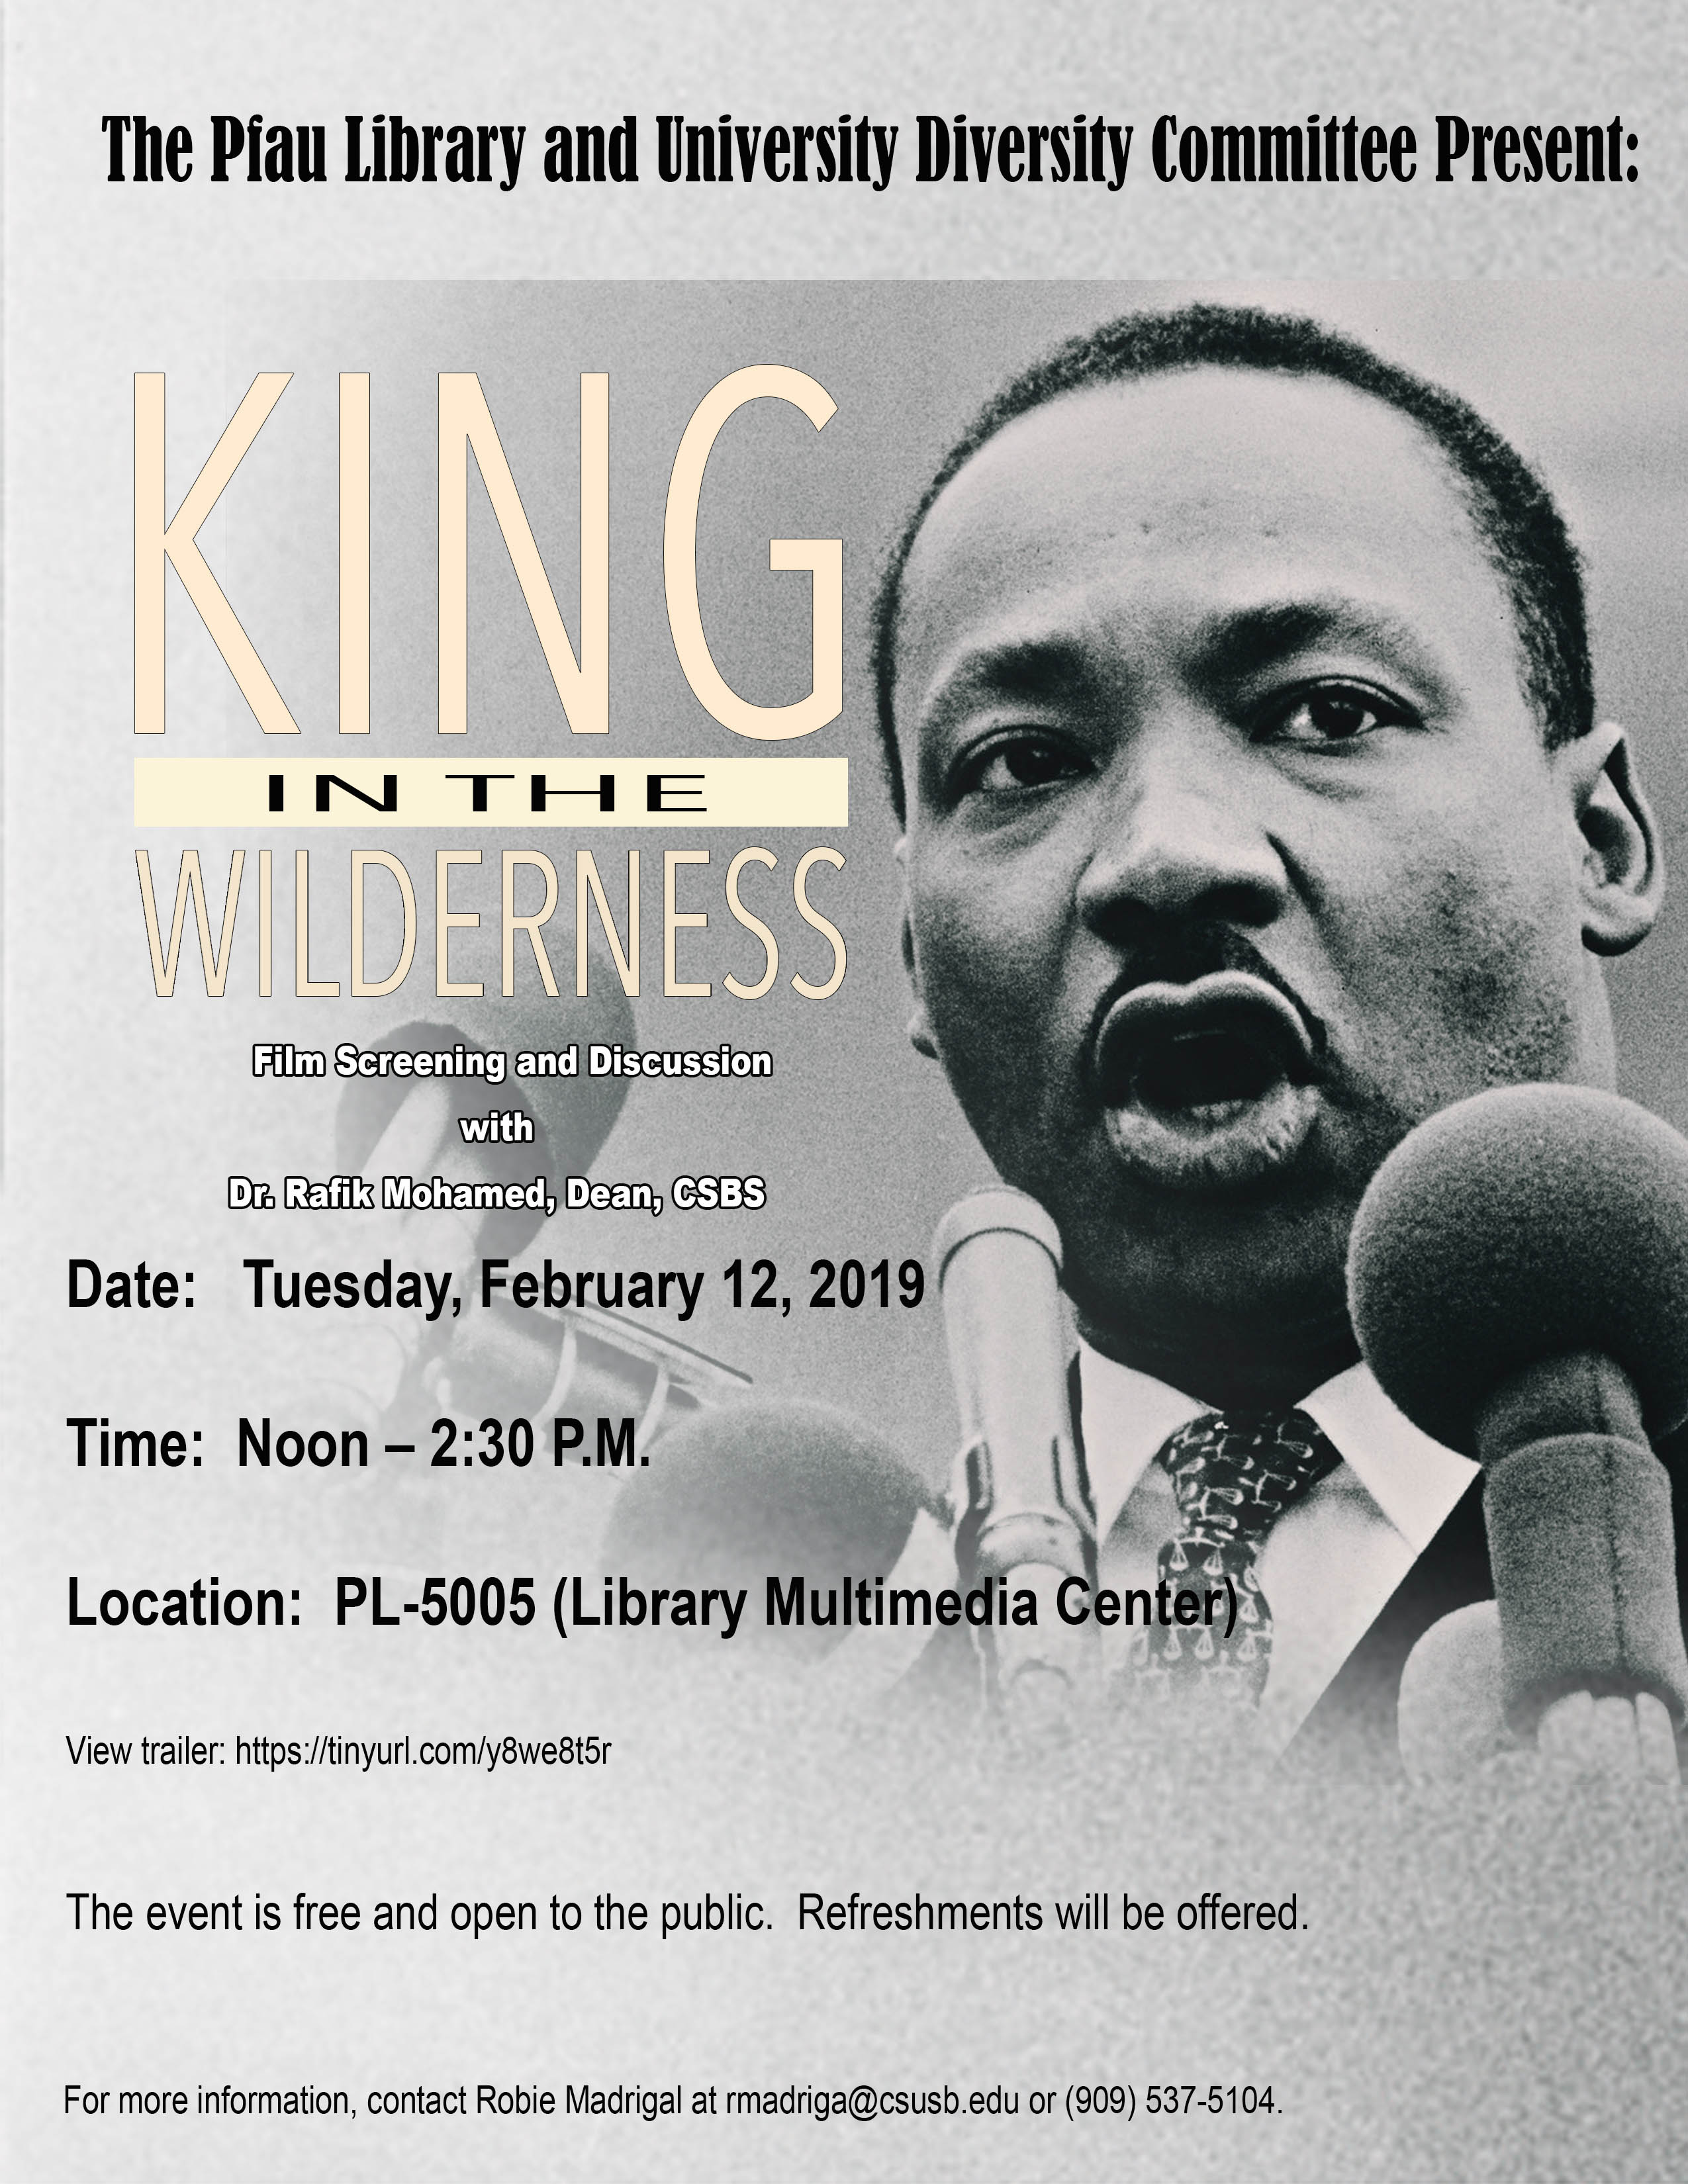 Documentary about Dr. Martin Luther King Jr. to be shown and discussed at Cal State San Bernardino